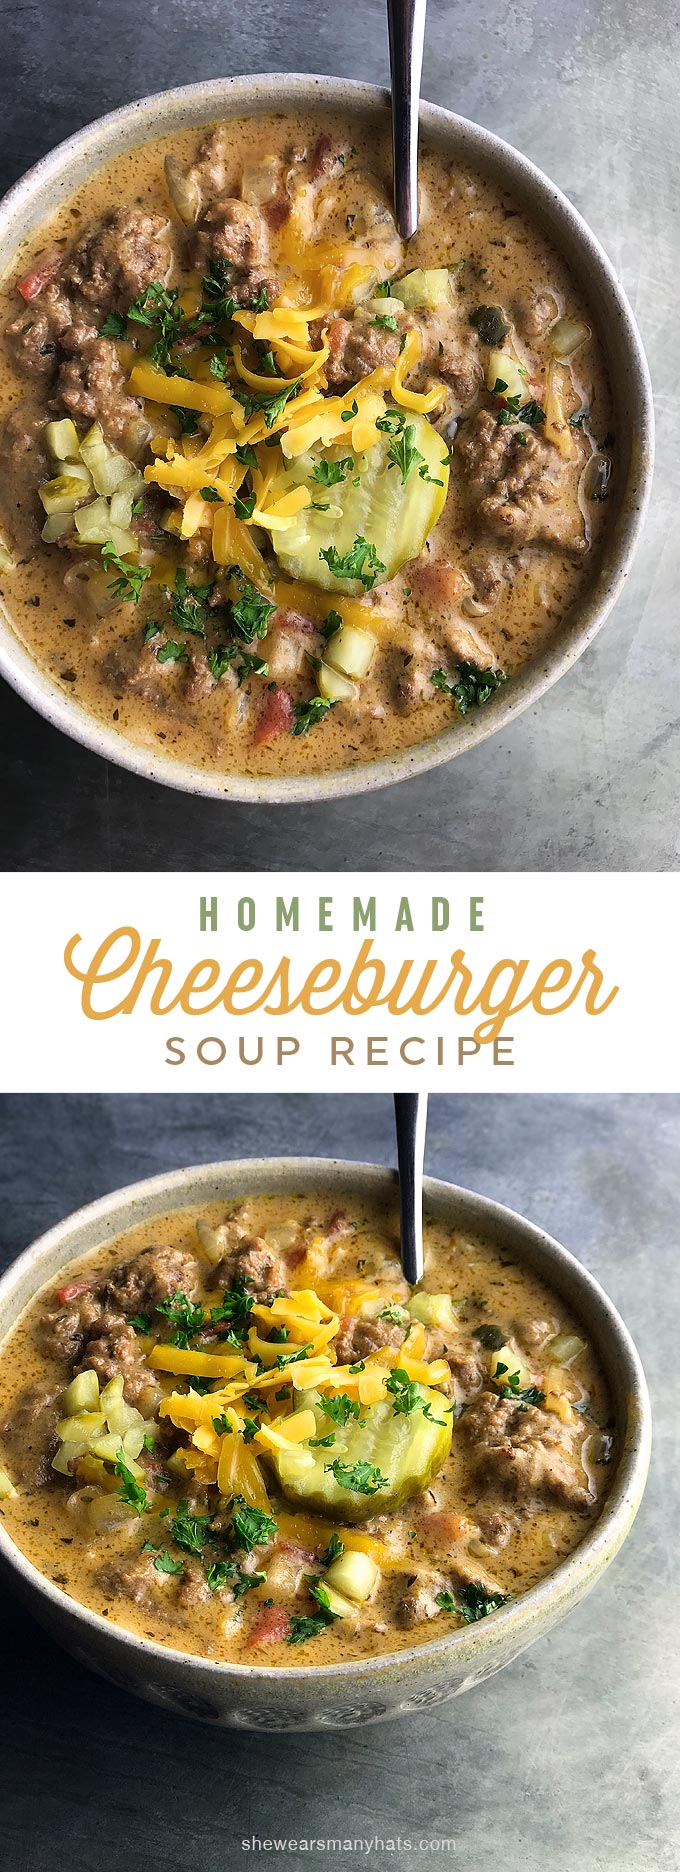 Easy Cheeseburger Soup Recipe | shewearsmanyhats.com